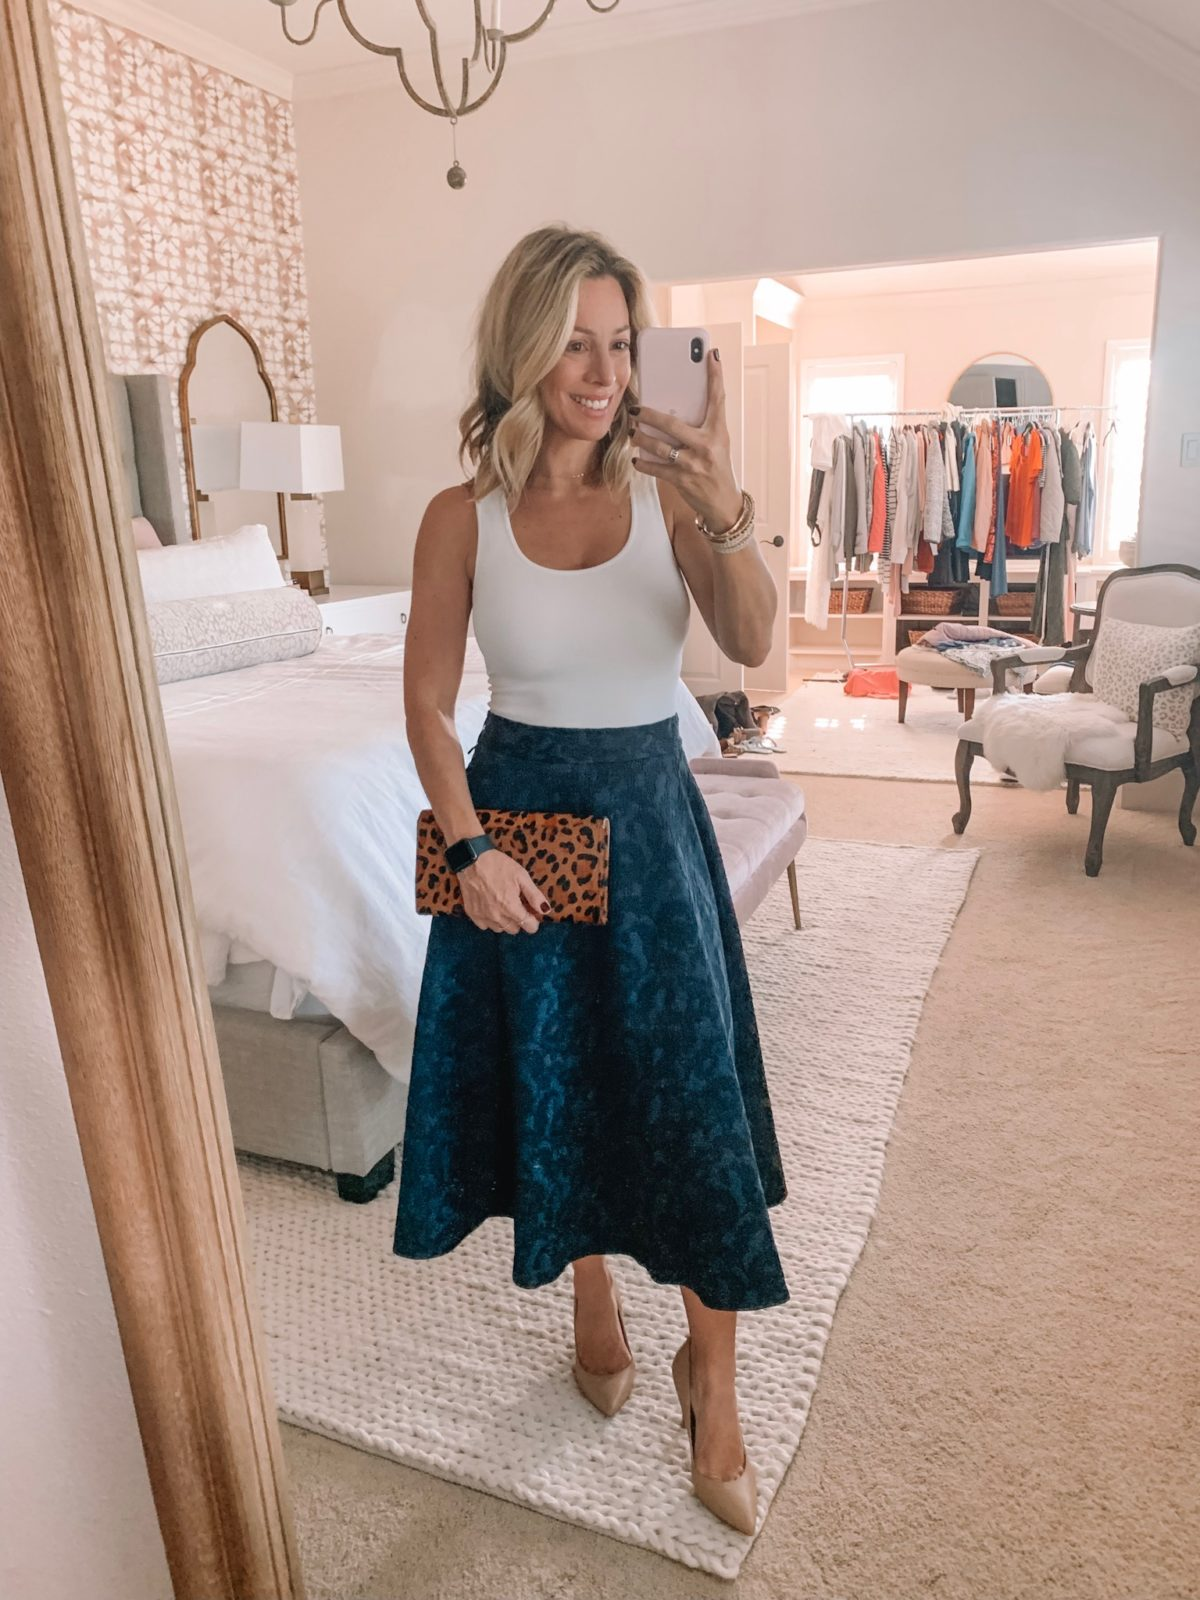 Dressing Room - white tank with blue spotted skirt with a leopard clutch